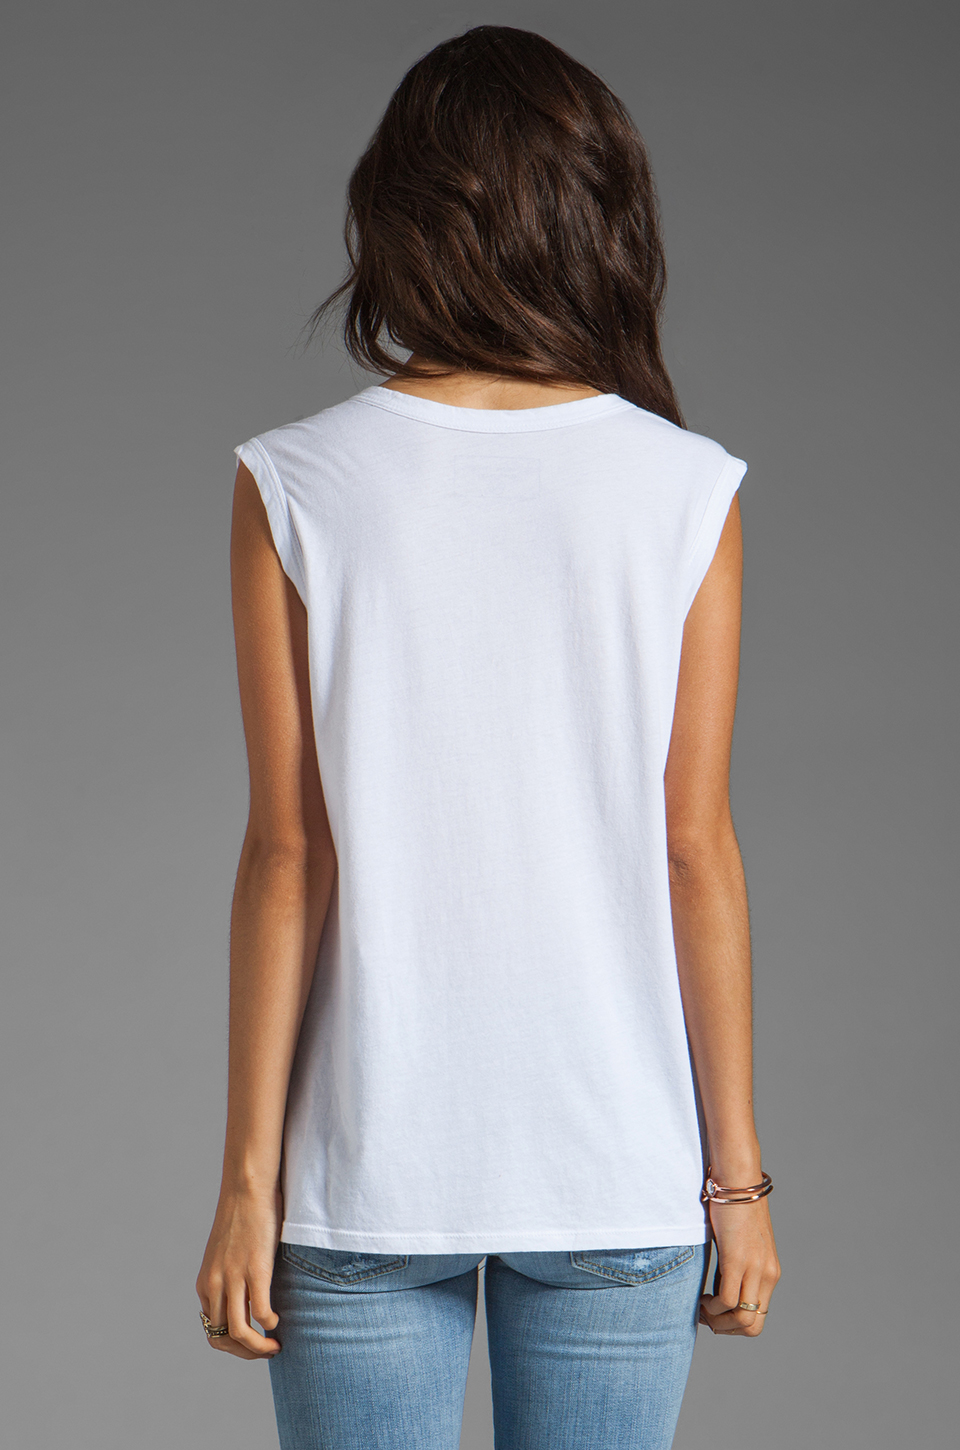 Lovers + Friends for REVOLVE Doberman Tank in White